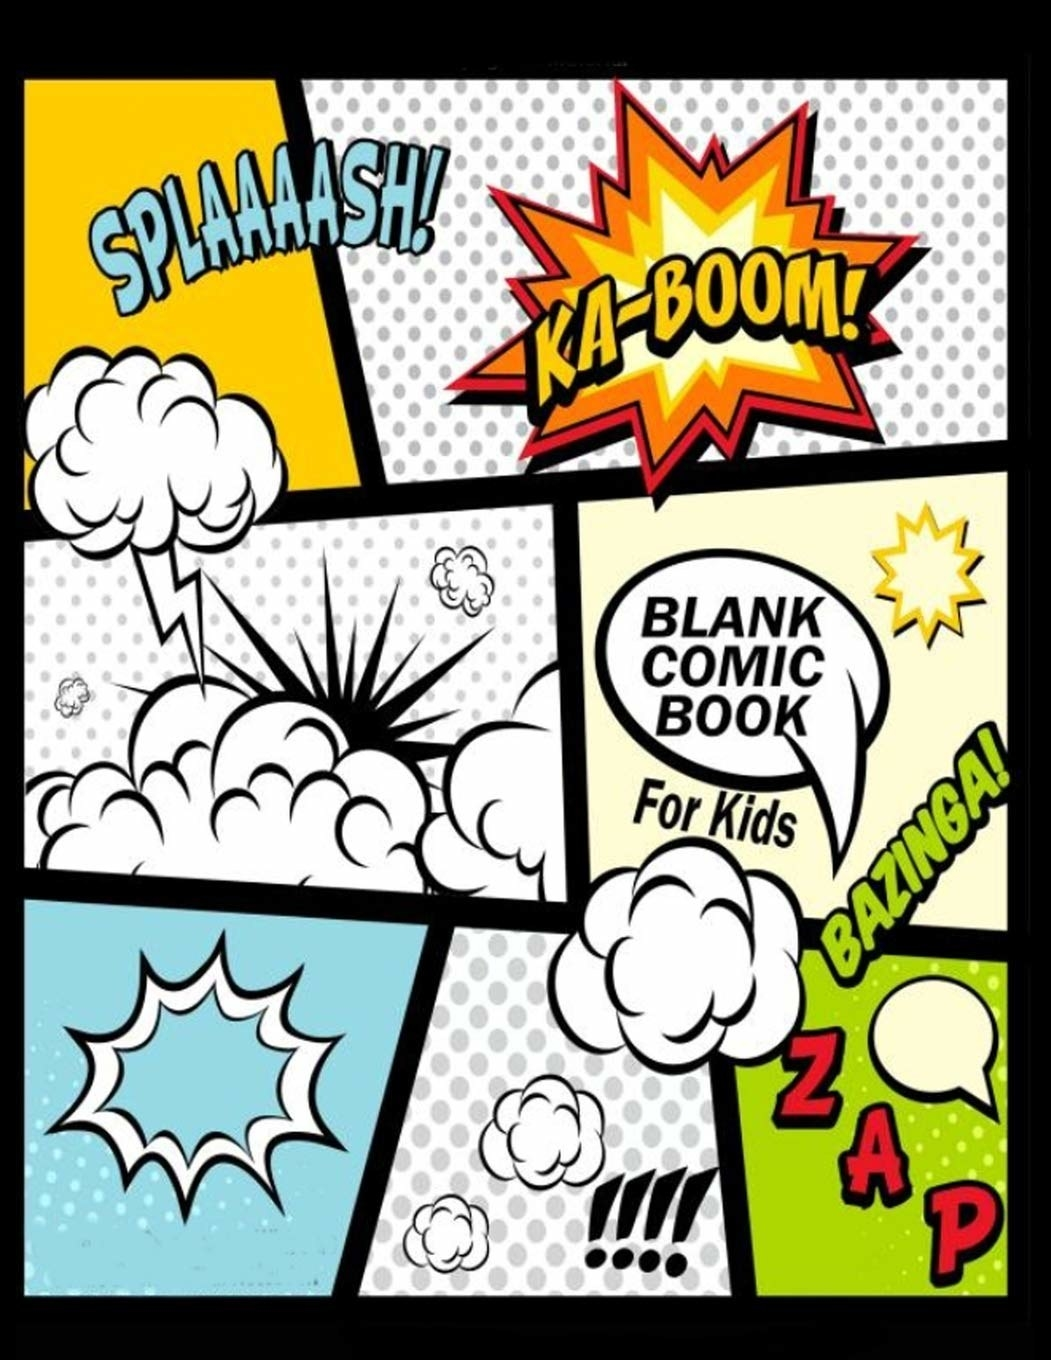 The cover of the blank comic book notebook